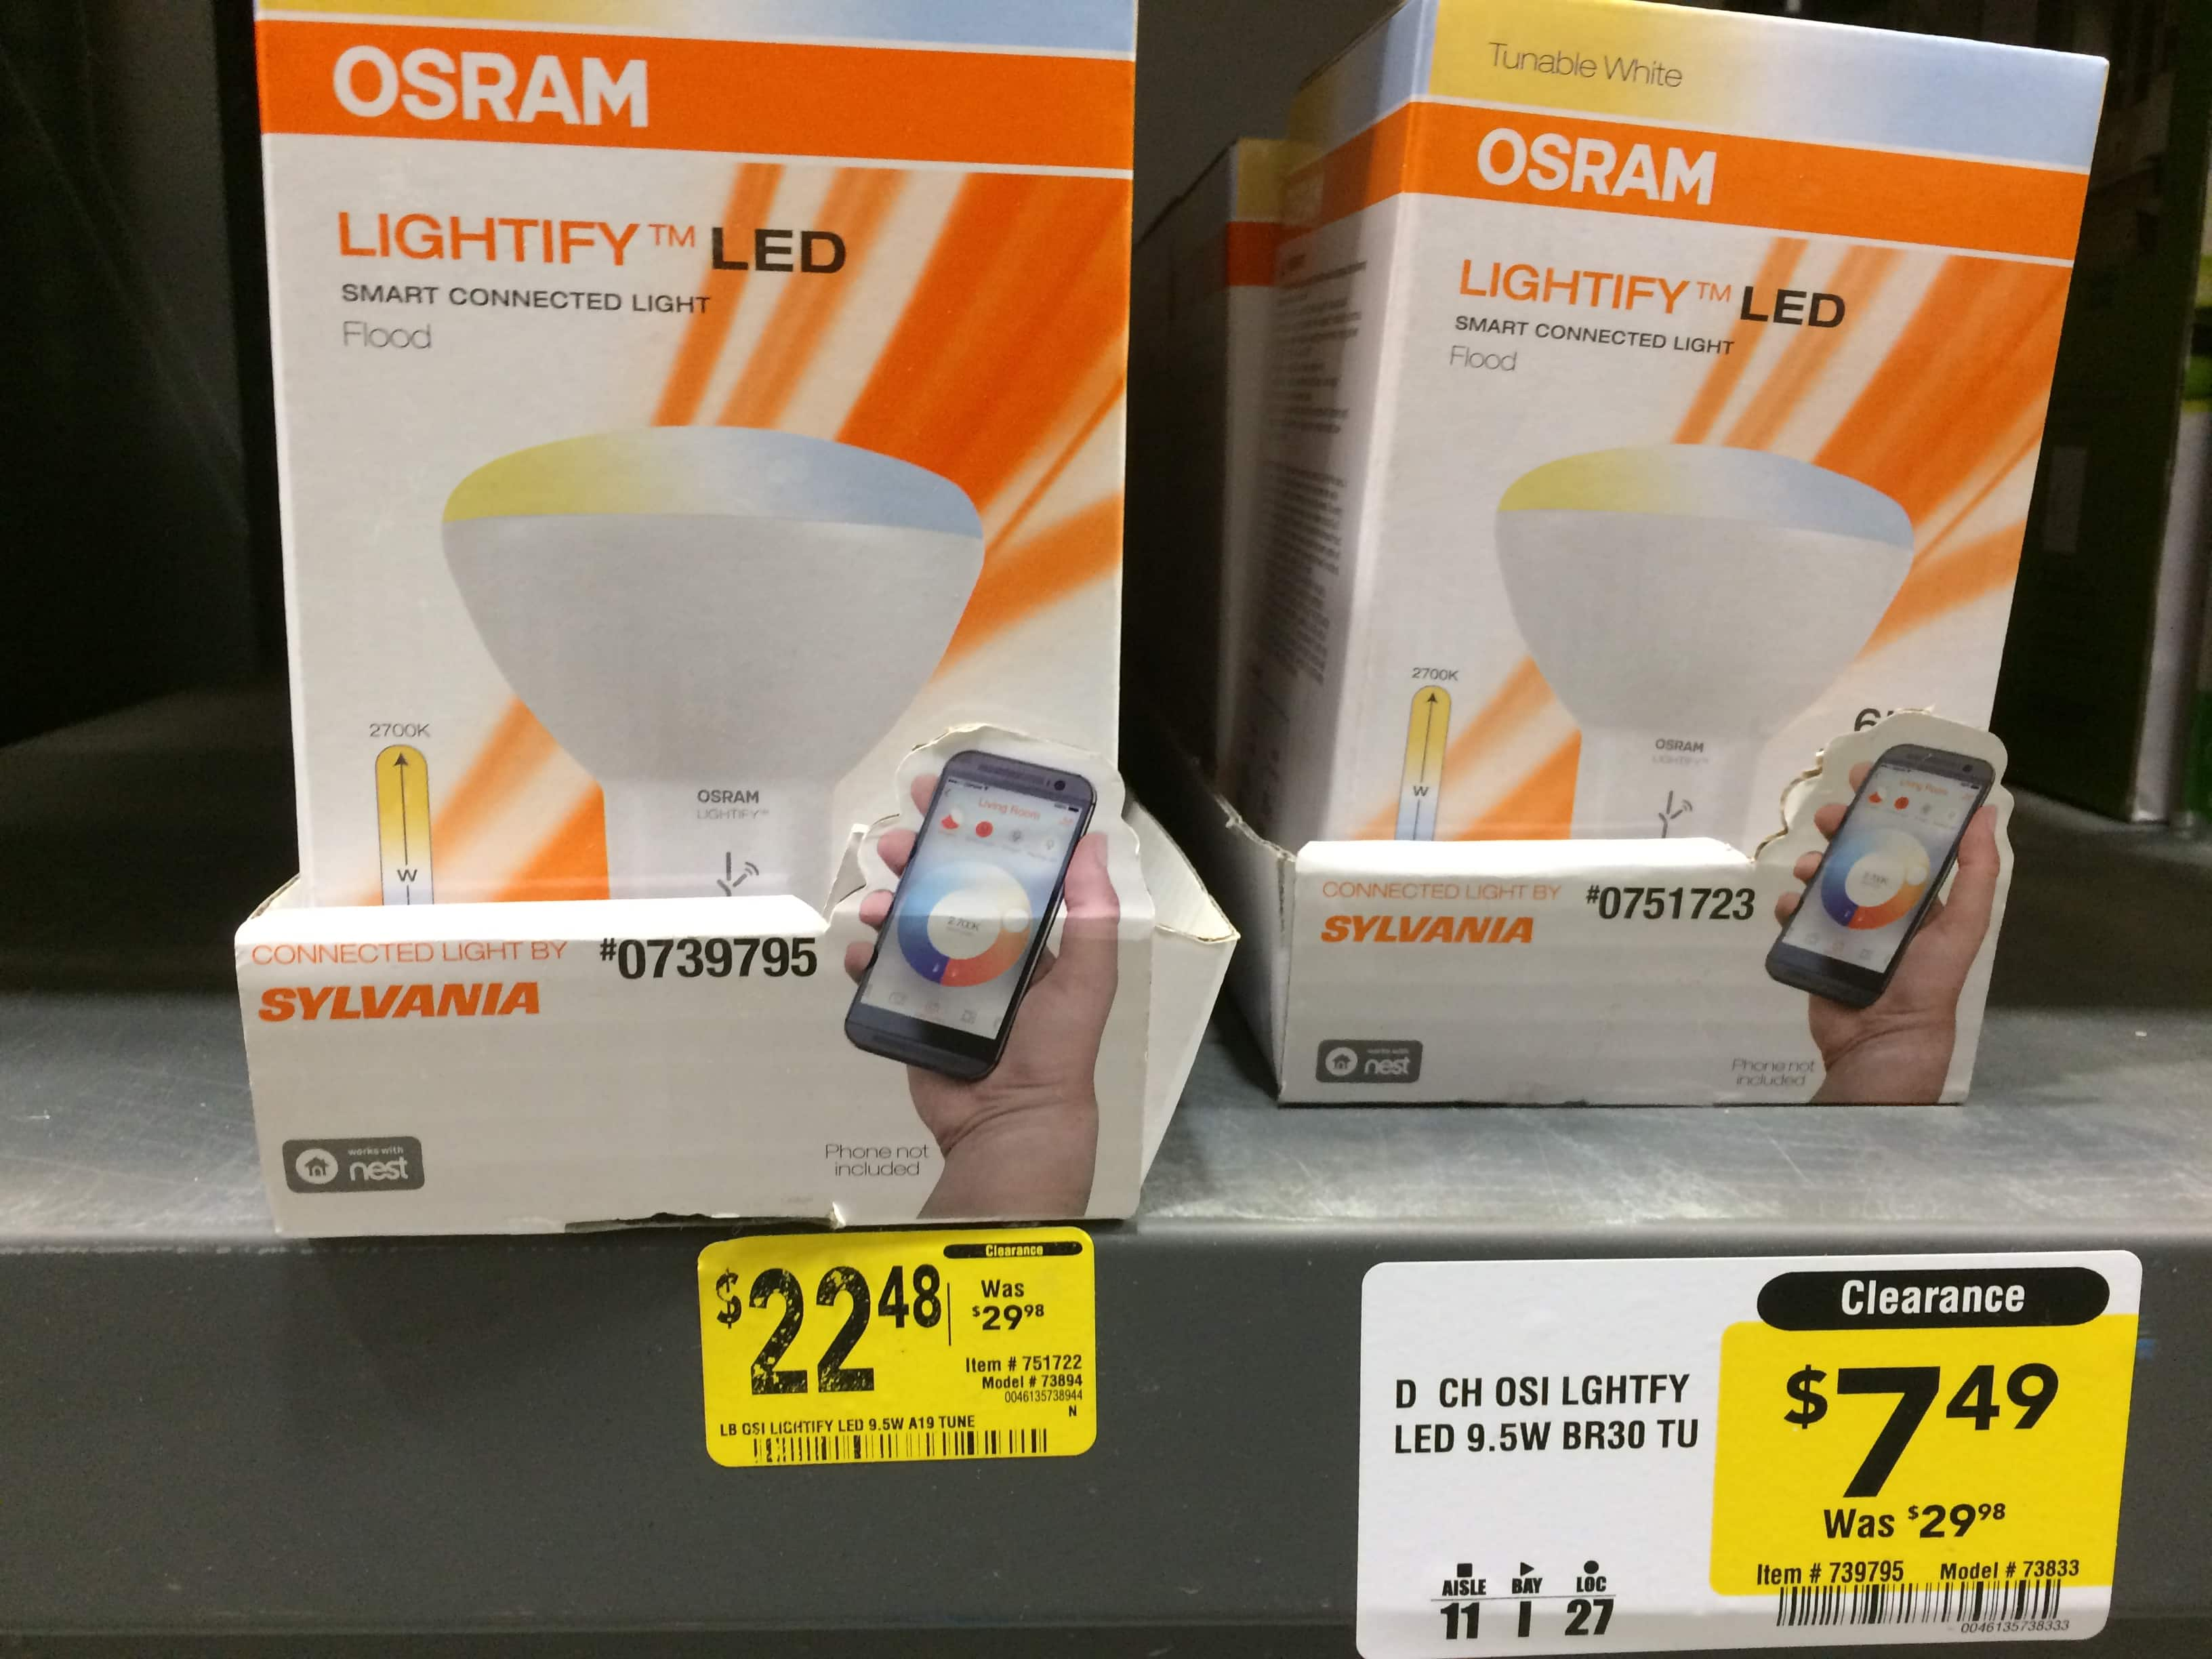 SYLVANIA LIGHTIFY 65W Dimmable-Adjustable Ktemp BR30 LED SMART Flood Light Bulb - $7.49 or lower at Lowe's - YMMV